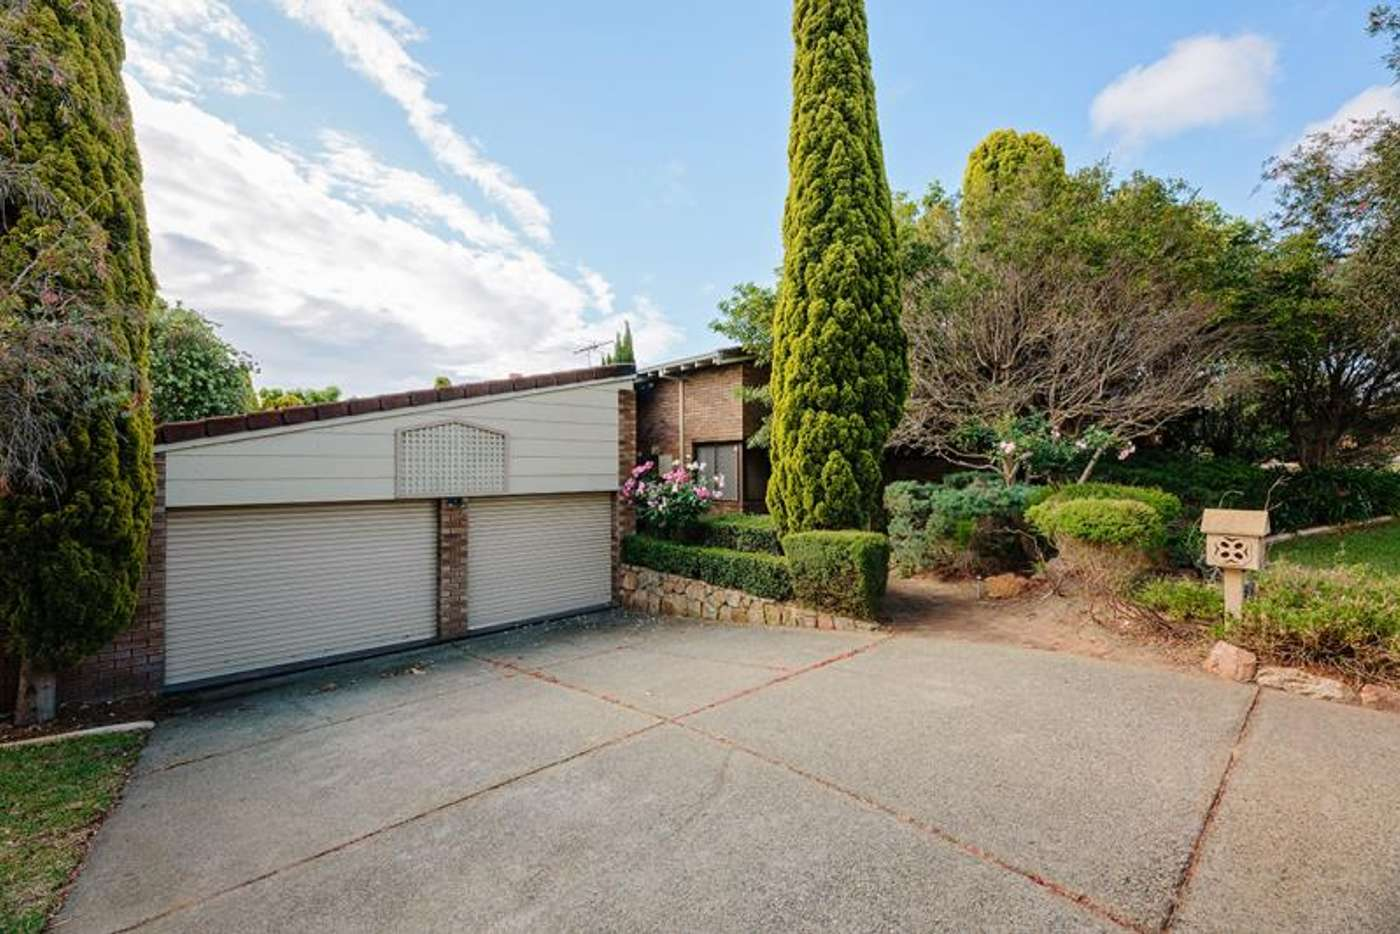 Main view of Homely house listing, 11 Bernedale Way, Duncraig WA 6023